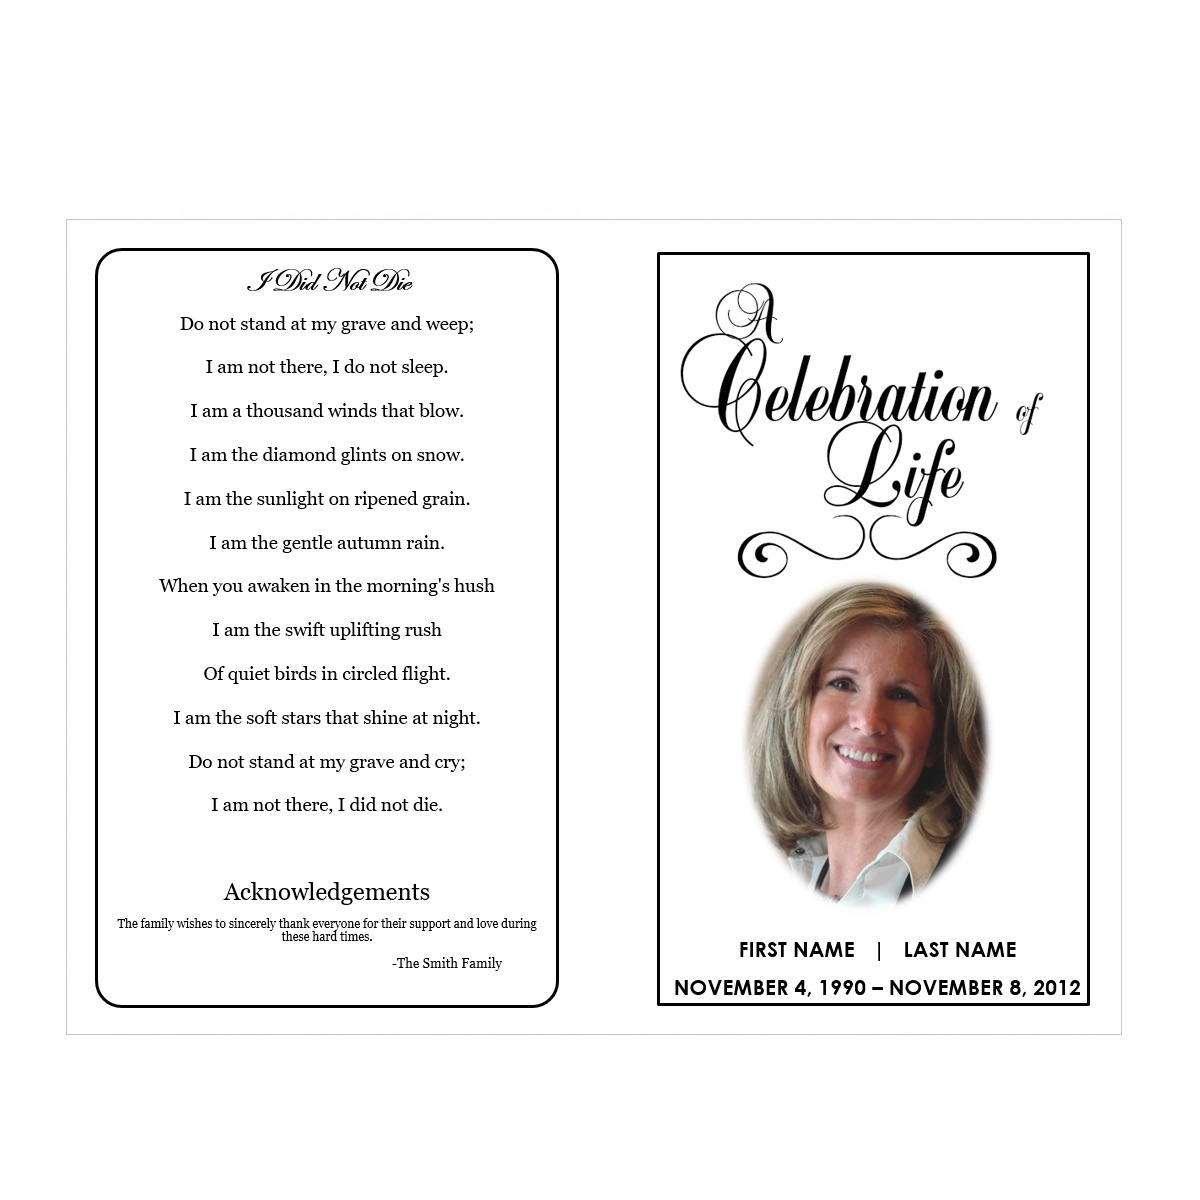 004 Traditional1 Blank Funeral Program Template Frightening Ideas - Free Printable Funeral Program Template